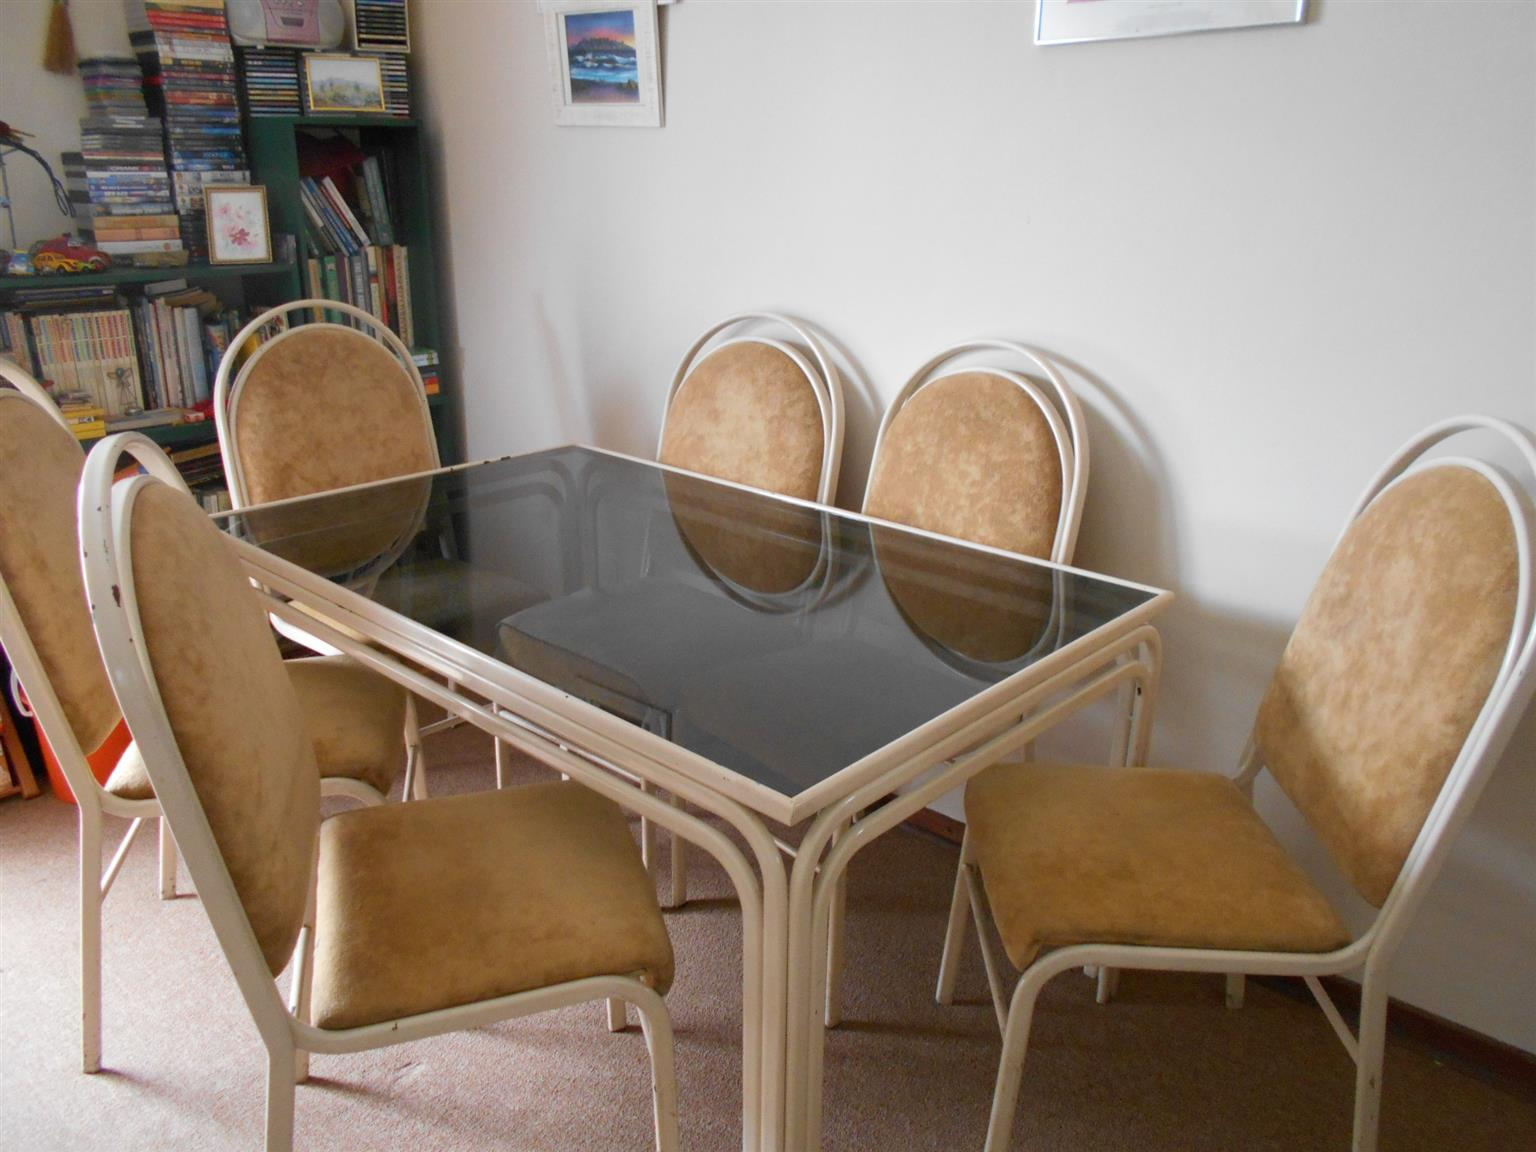 6 seater diningroom suite for sale.